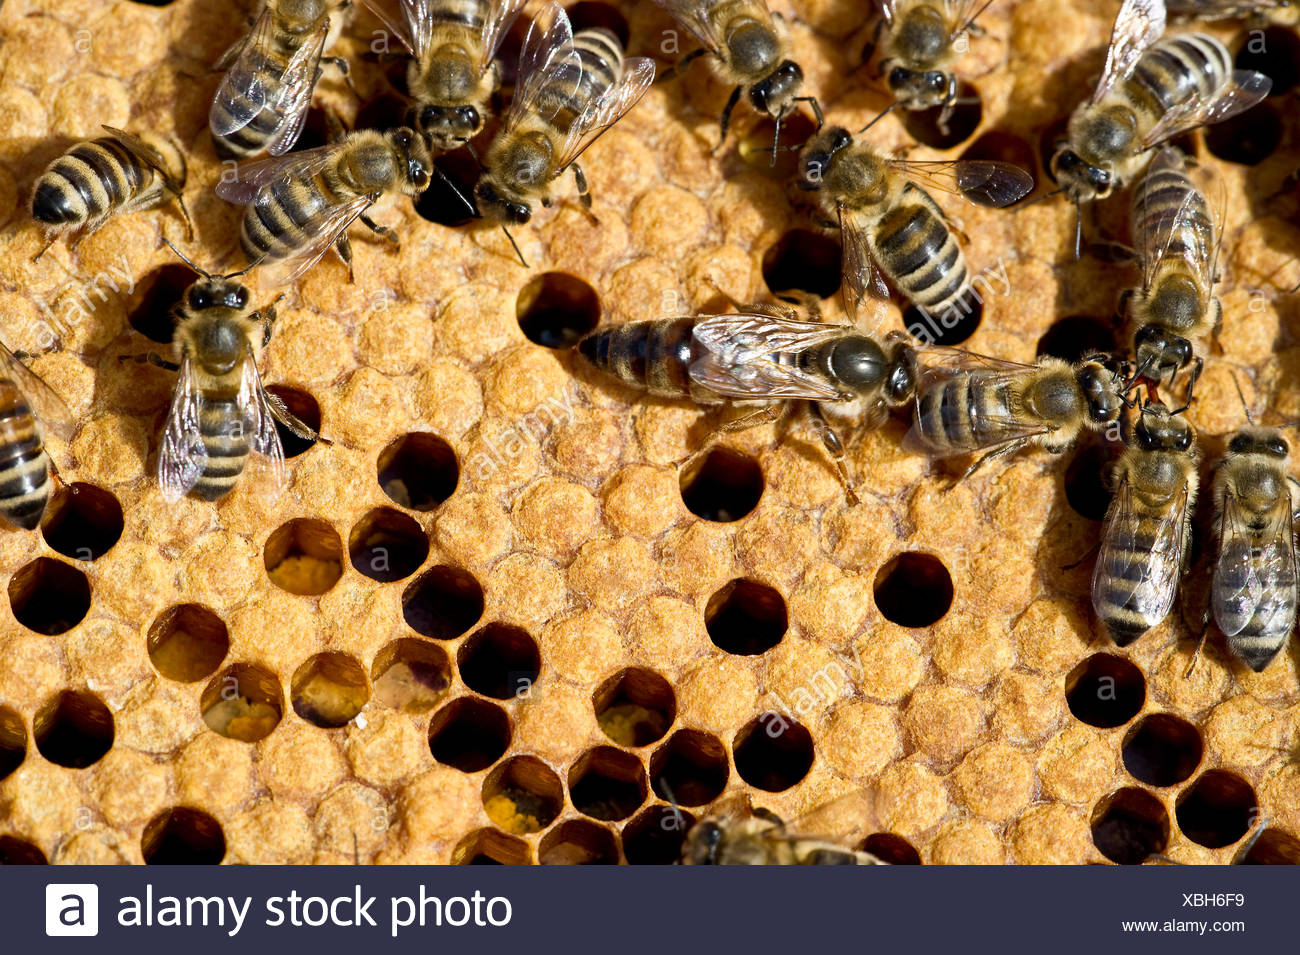 Queen bee and bees on honeycombs, Freiburg im Breisgau, Baden-Wuerttemberg, Germany - Stock Image